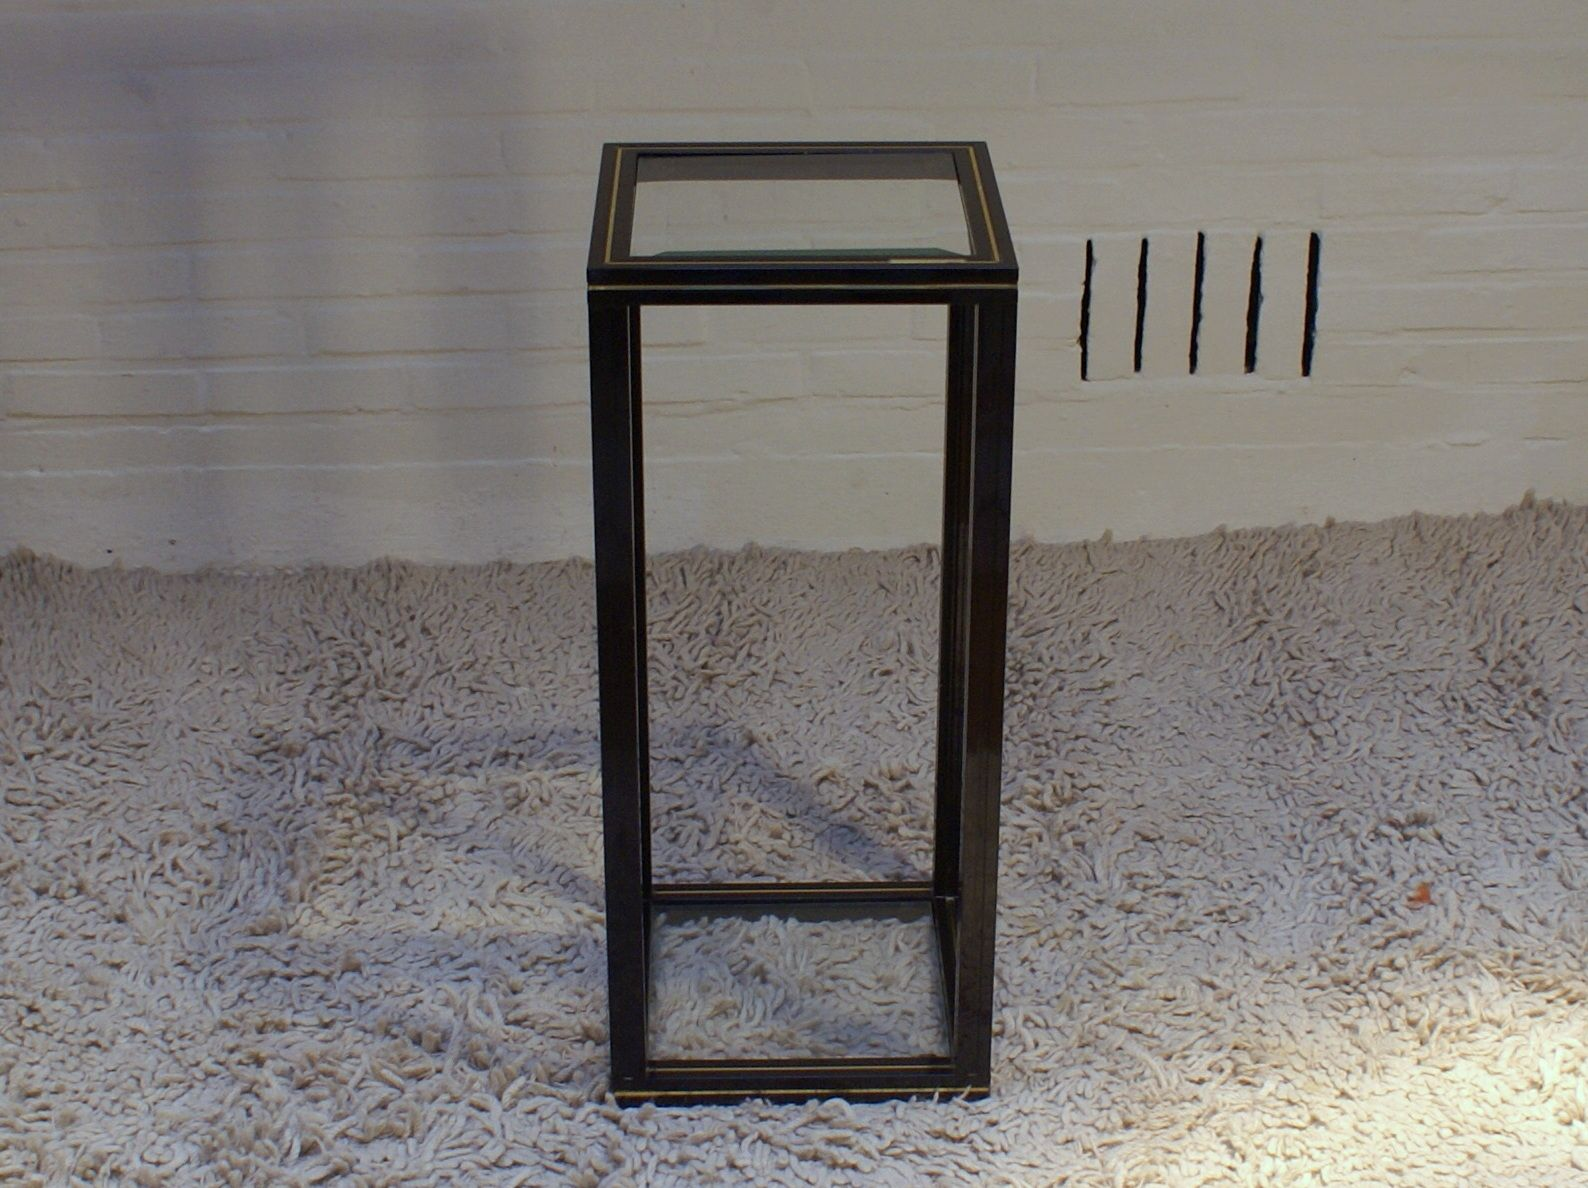 glass top side table by pierre vandel s for sale at pamono - glass top side table by pierre vandel s